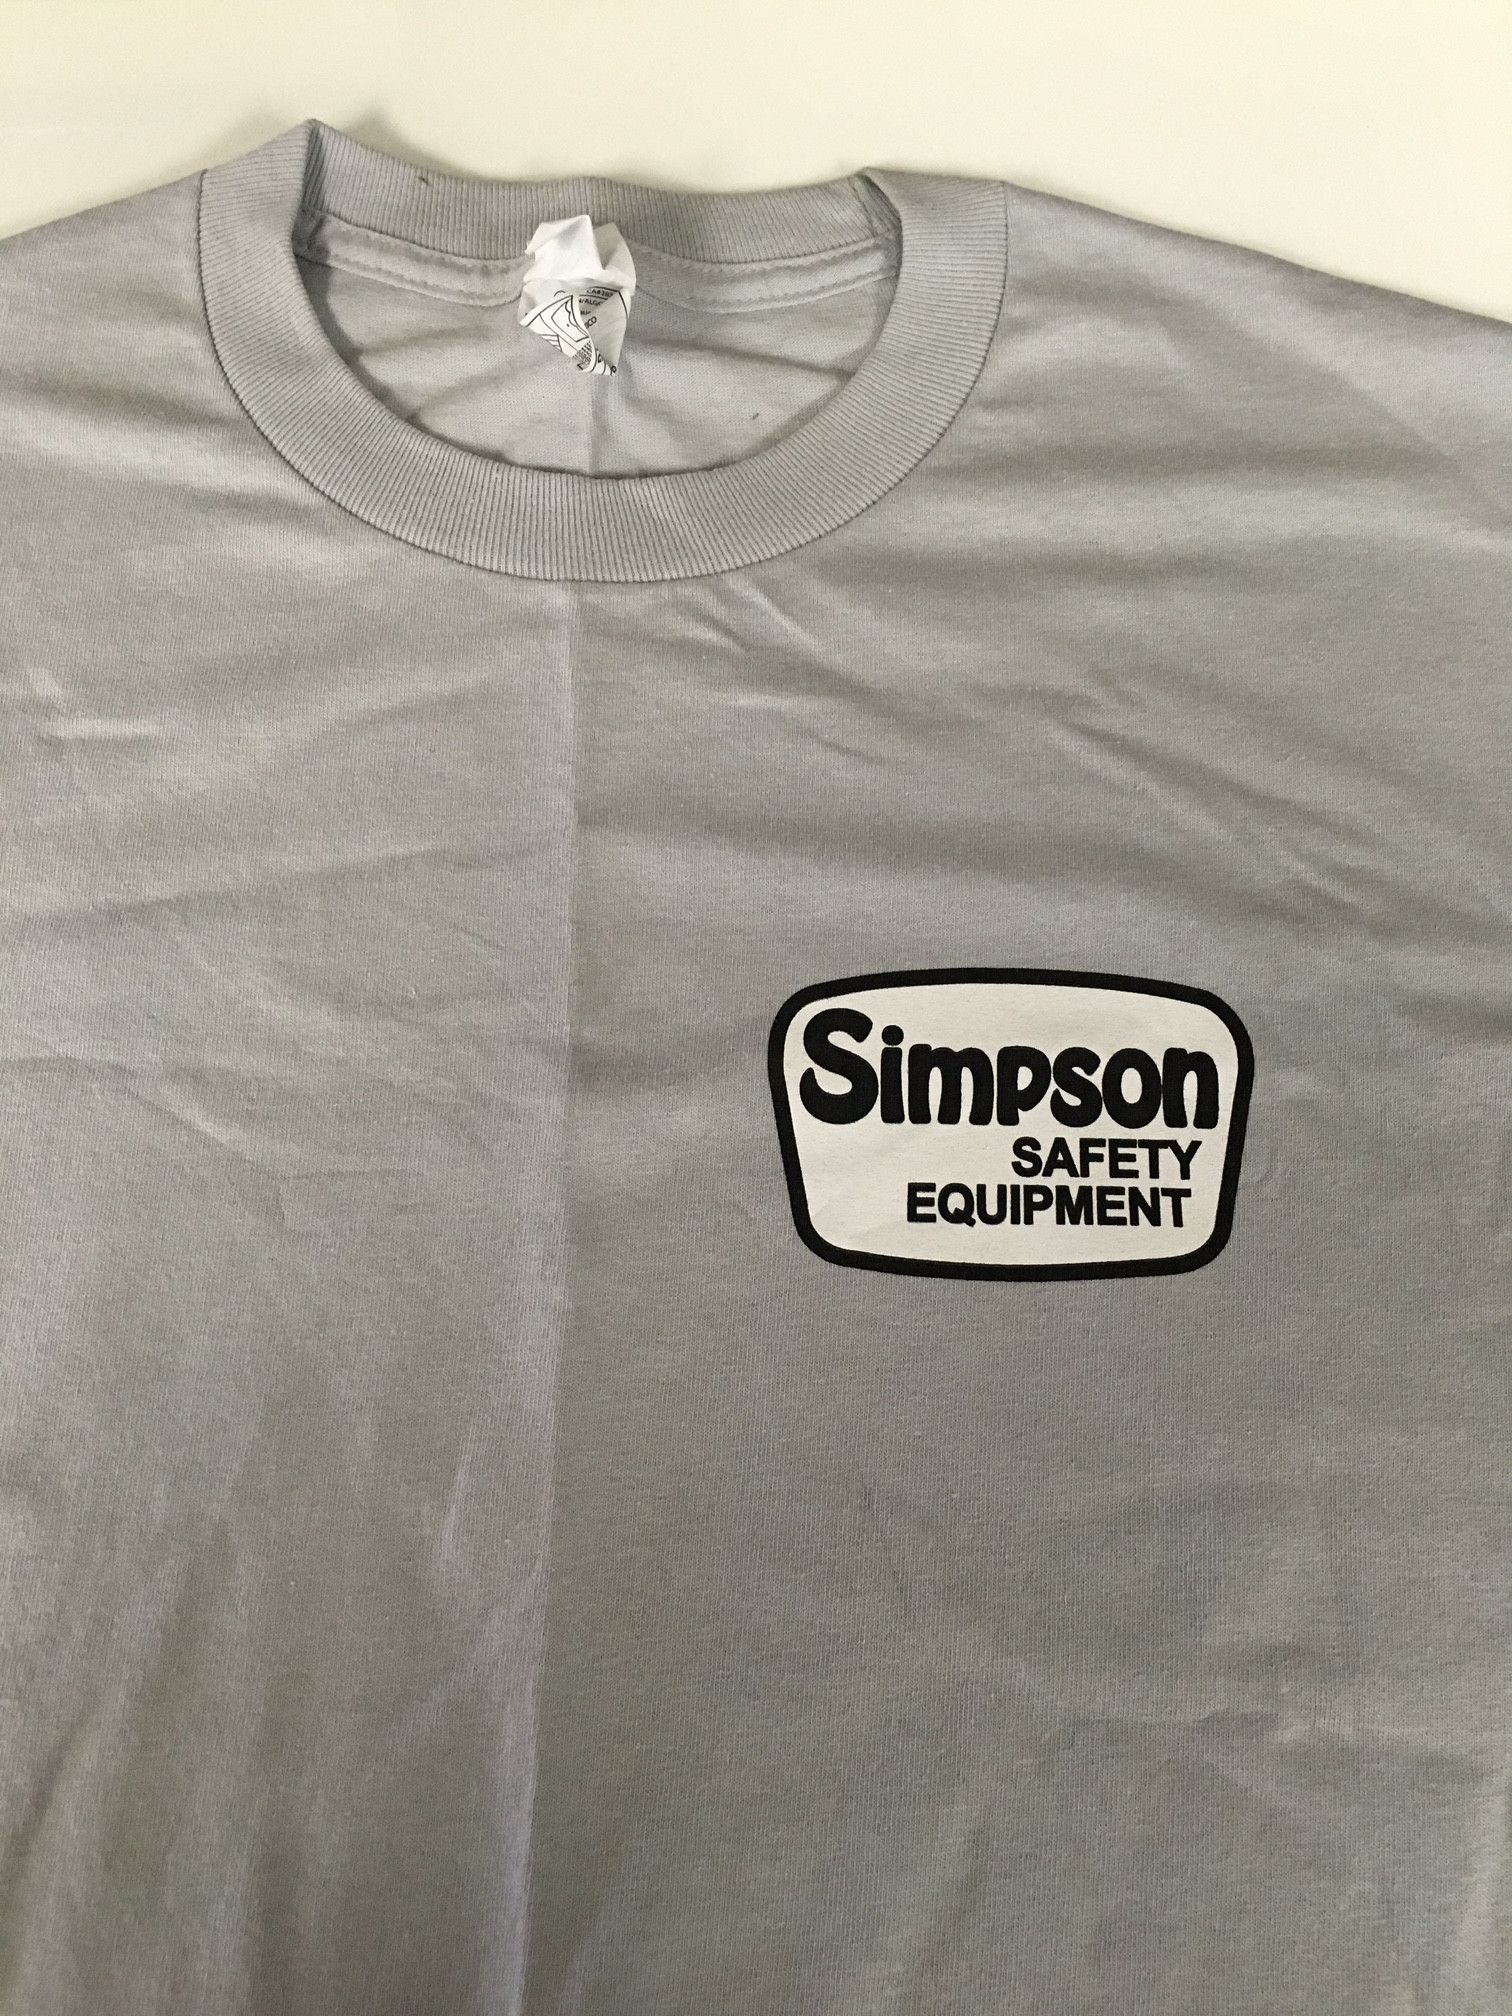 6362e134 Simpson Drag Chute T-Shirt Grey. #@kickmotorsport #newarrival #retro  #simpson #simpsonathlete #simpsonhelmets #treatyourself #zenithiscoming